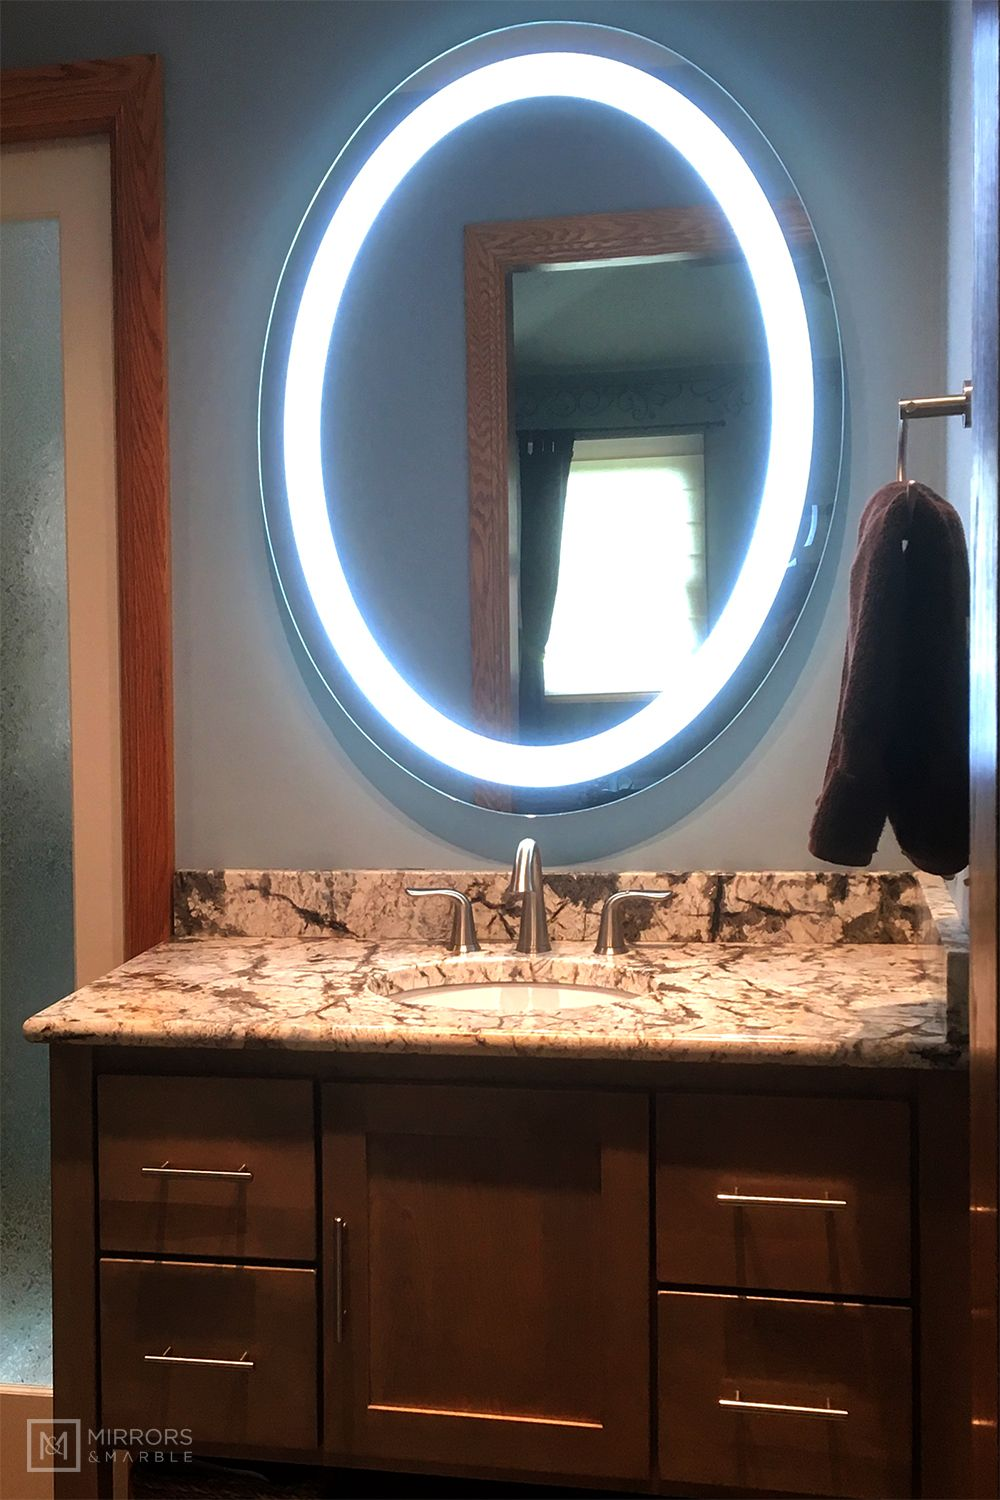 Front Lighted Led Bathroom Vanity Mirror 32 Wide X 40 Tall